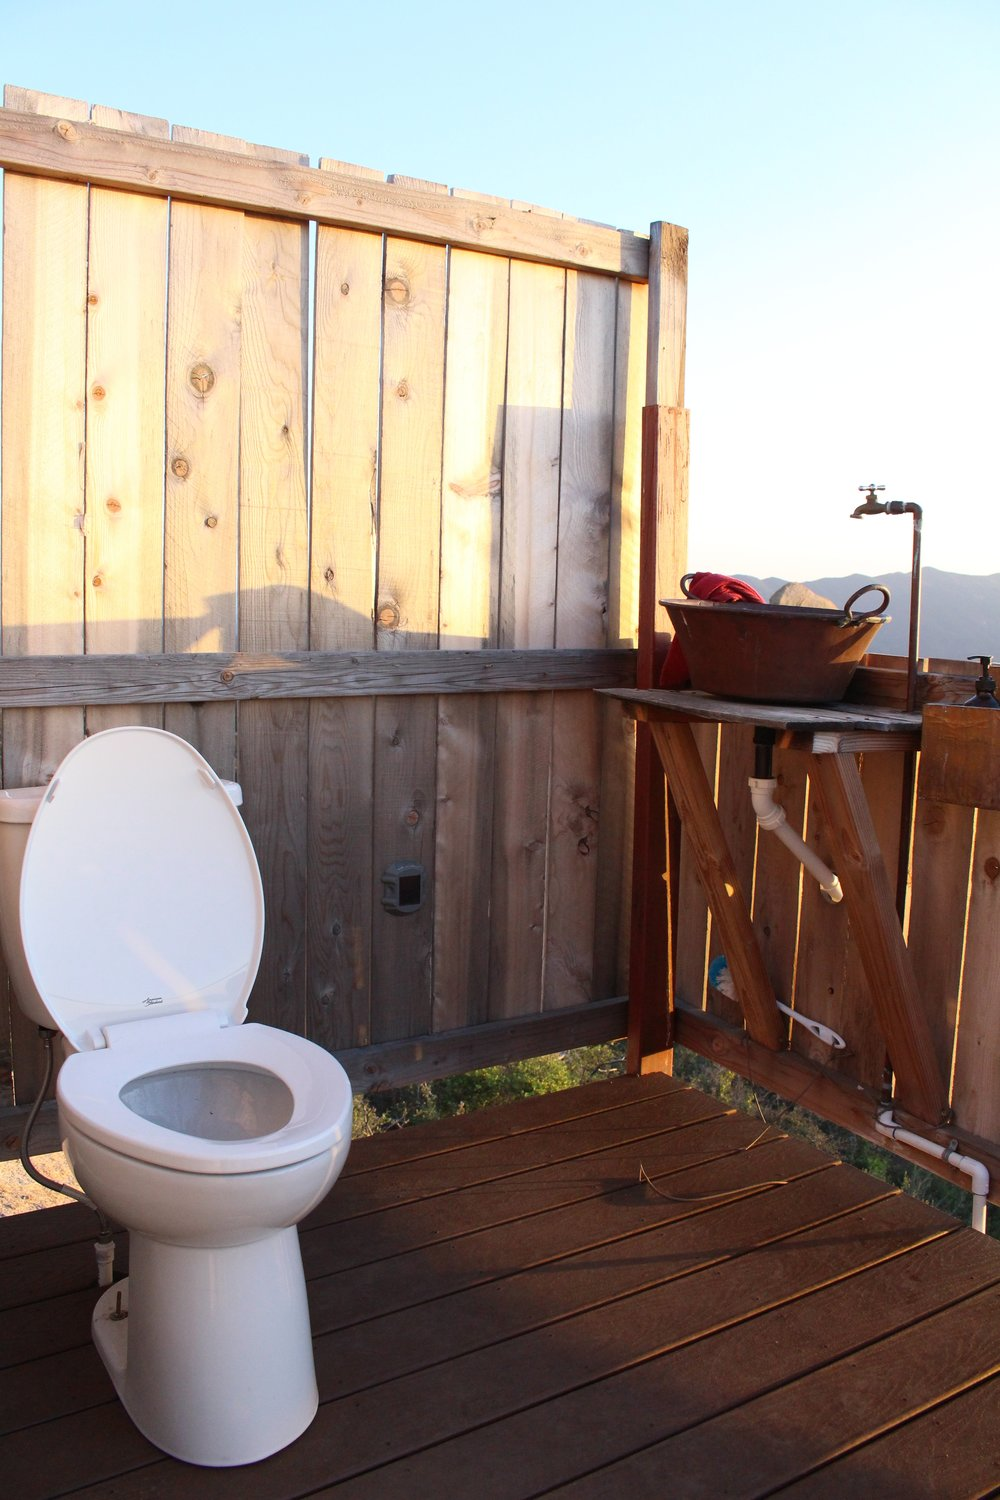 Never thought I'd post a pic of a toilet on my blog--but I've never seen one with a view!!